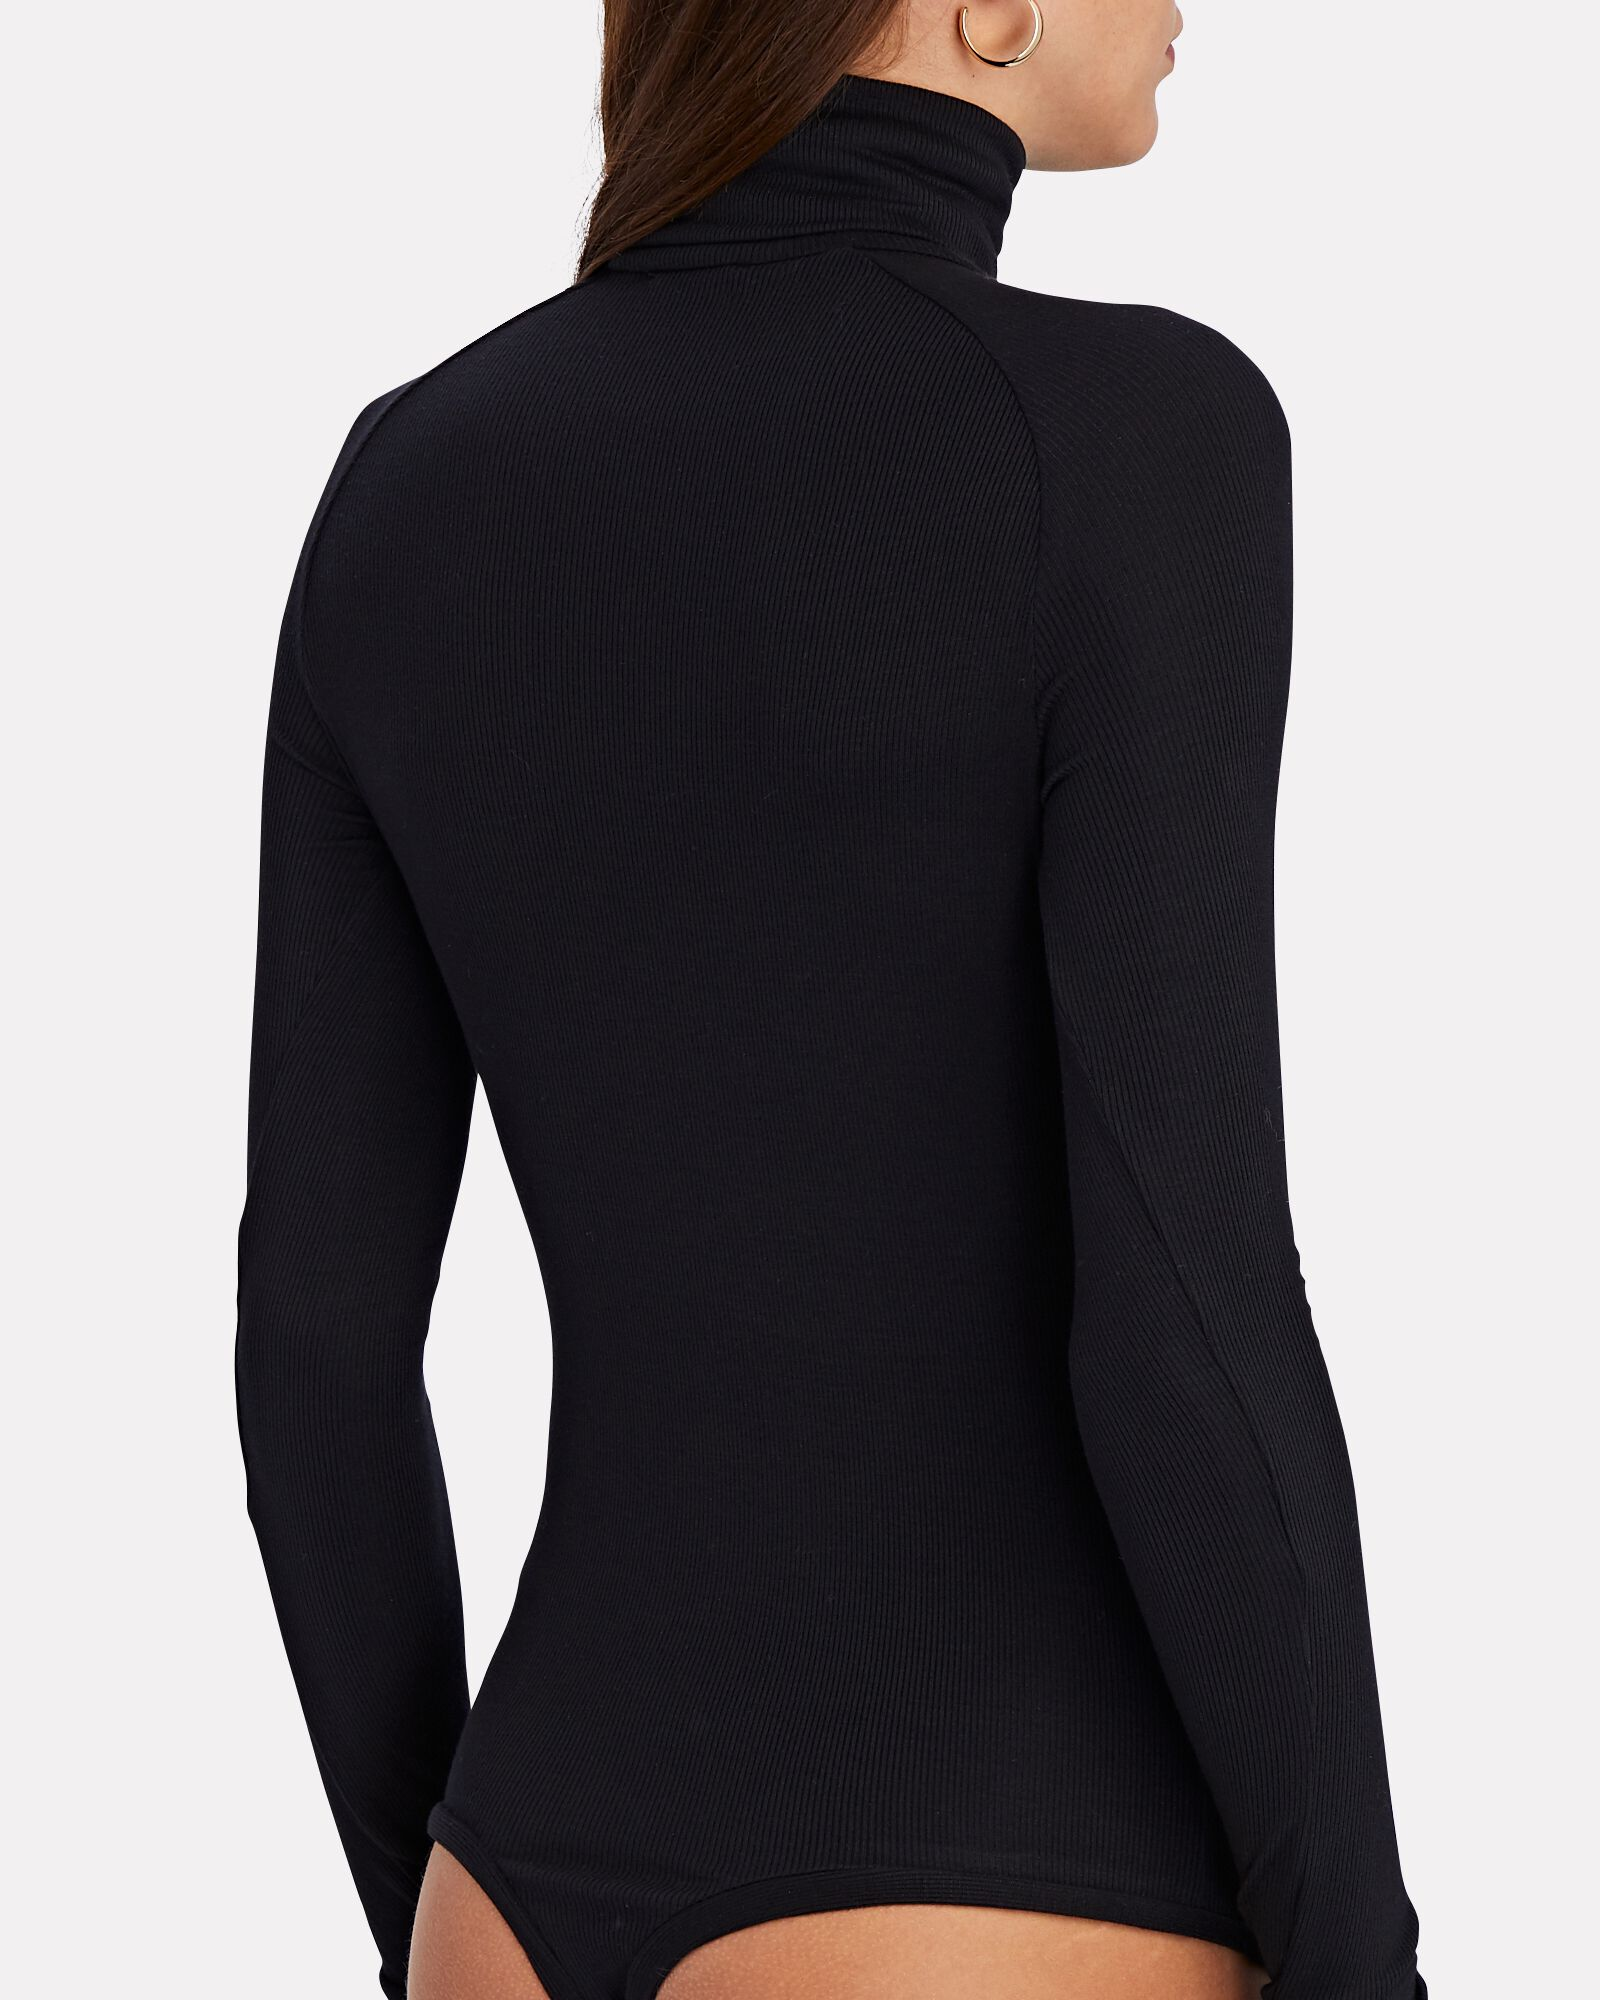 Varick Ribbed Turtleneck Bodysuit, BLACK, hi-res